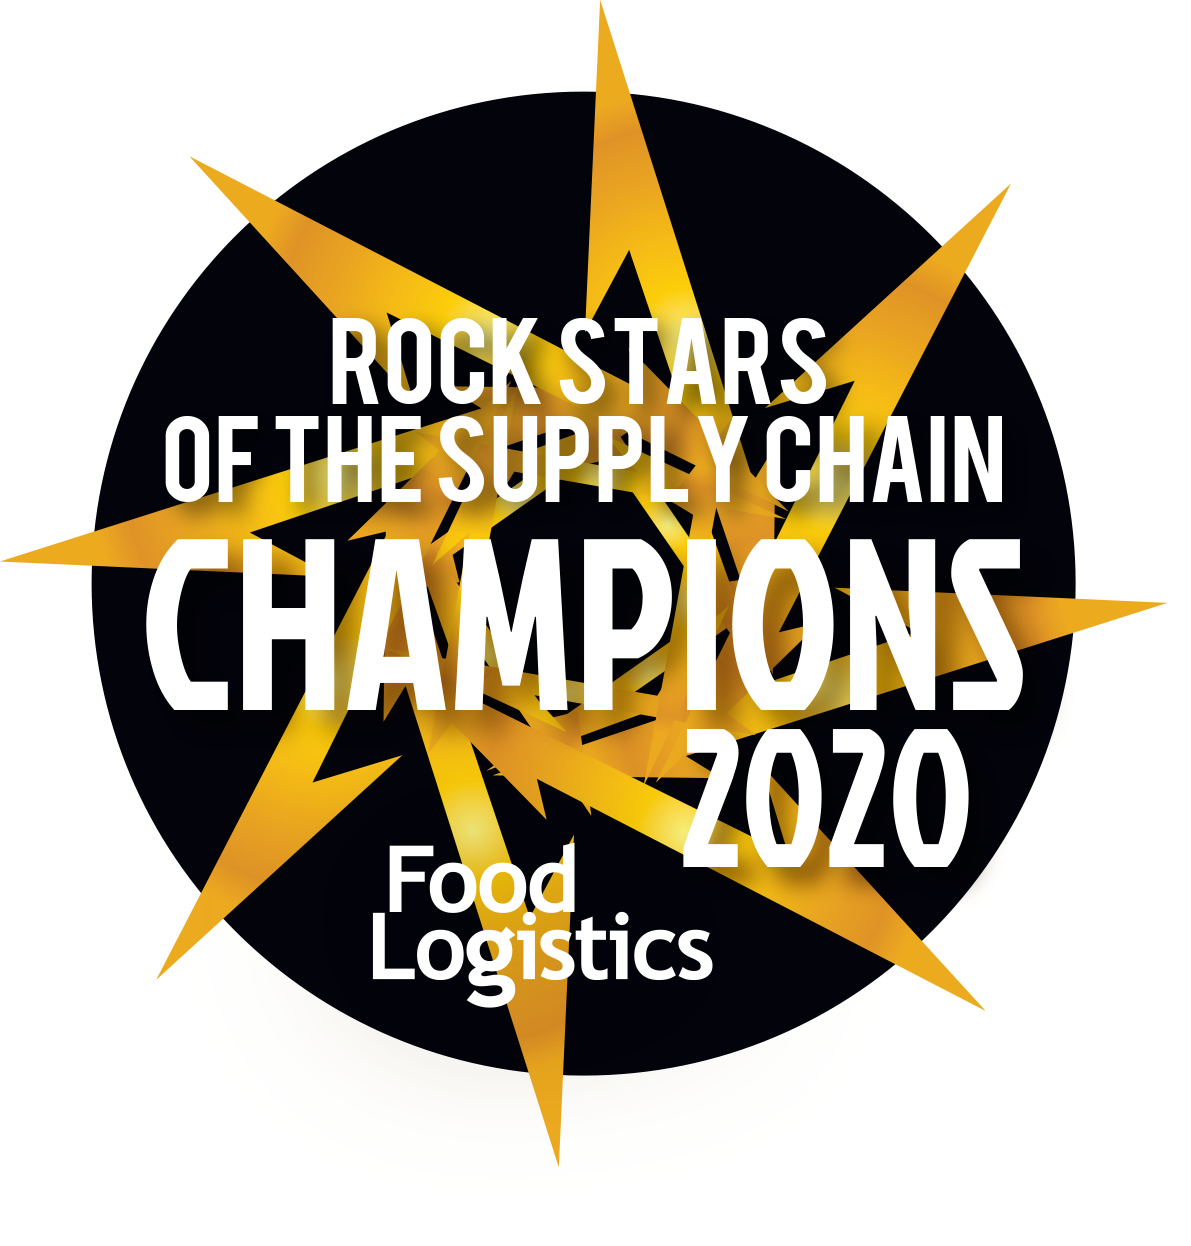 Matt Yearling - Food Logistics - Supply Chain Rockstar